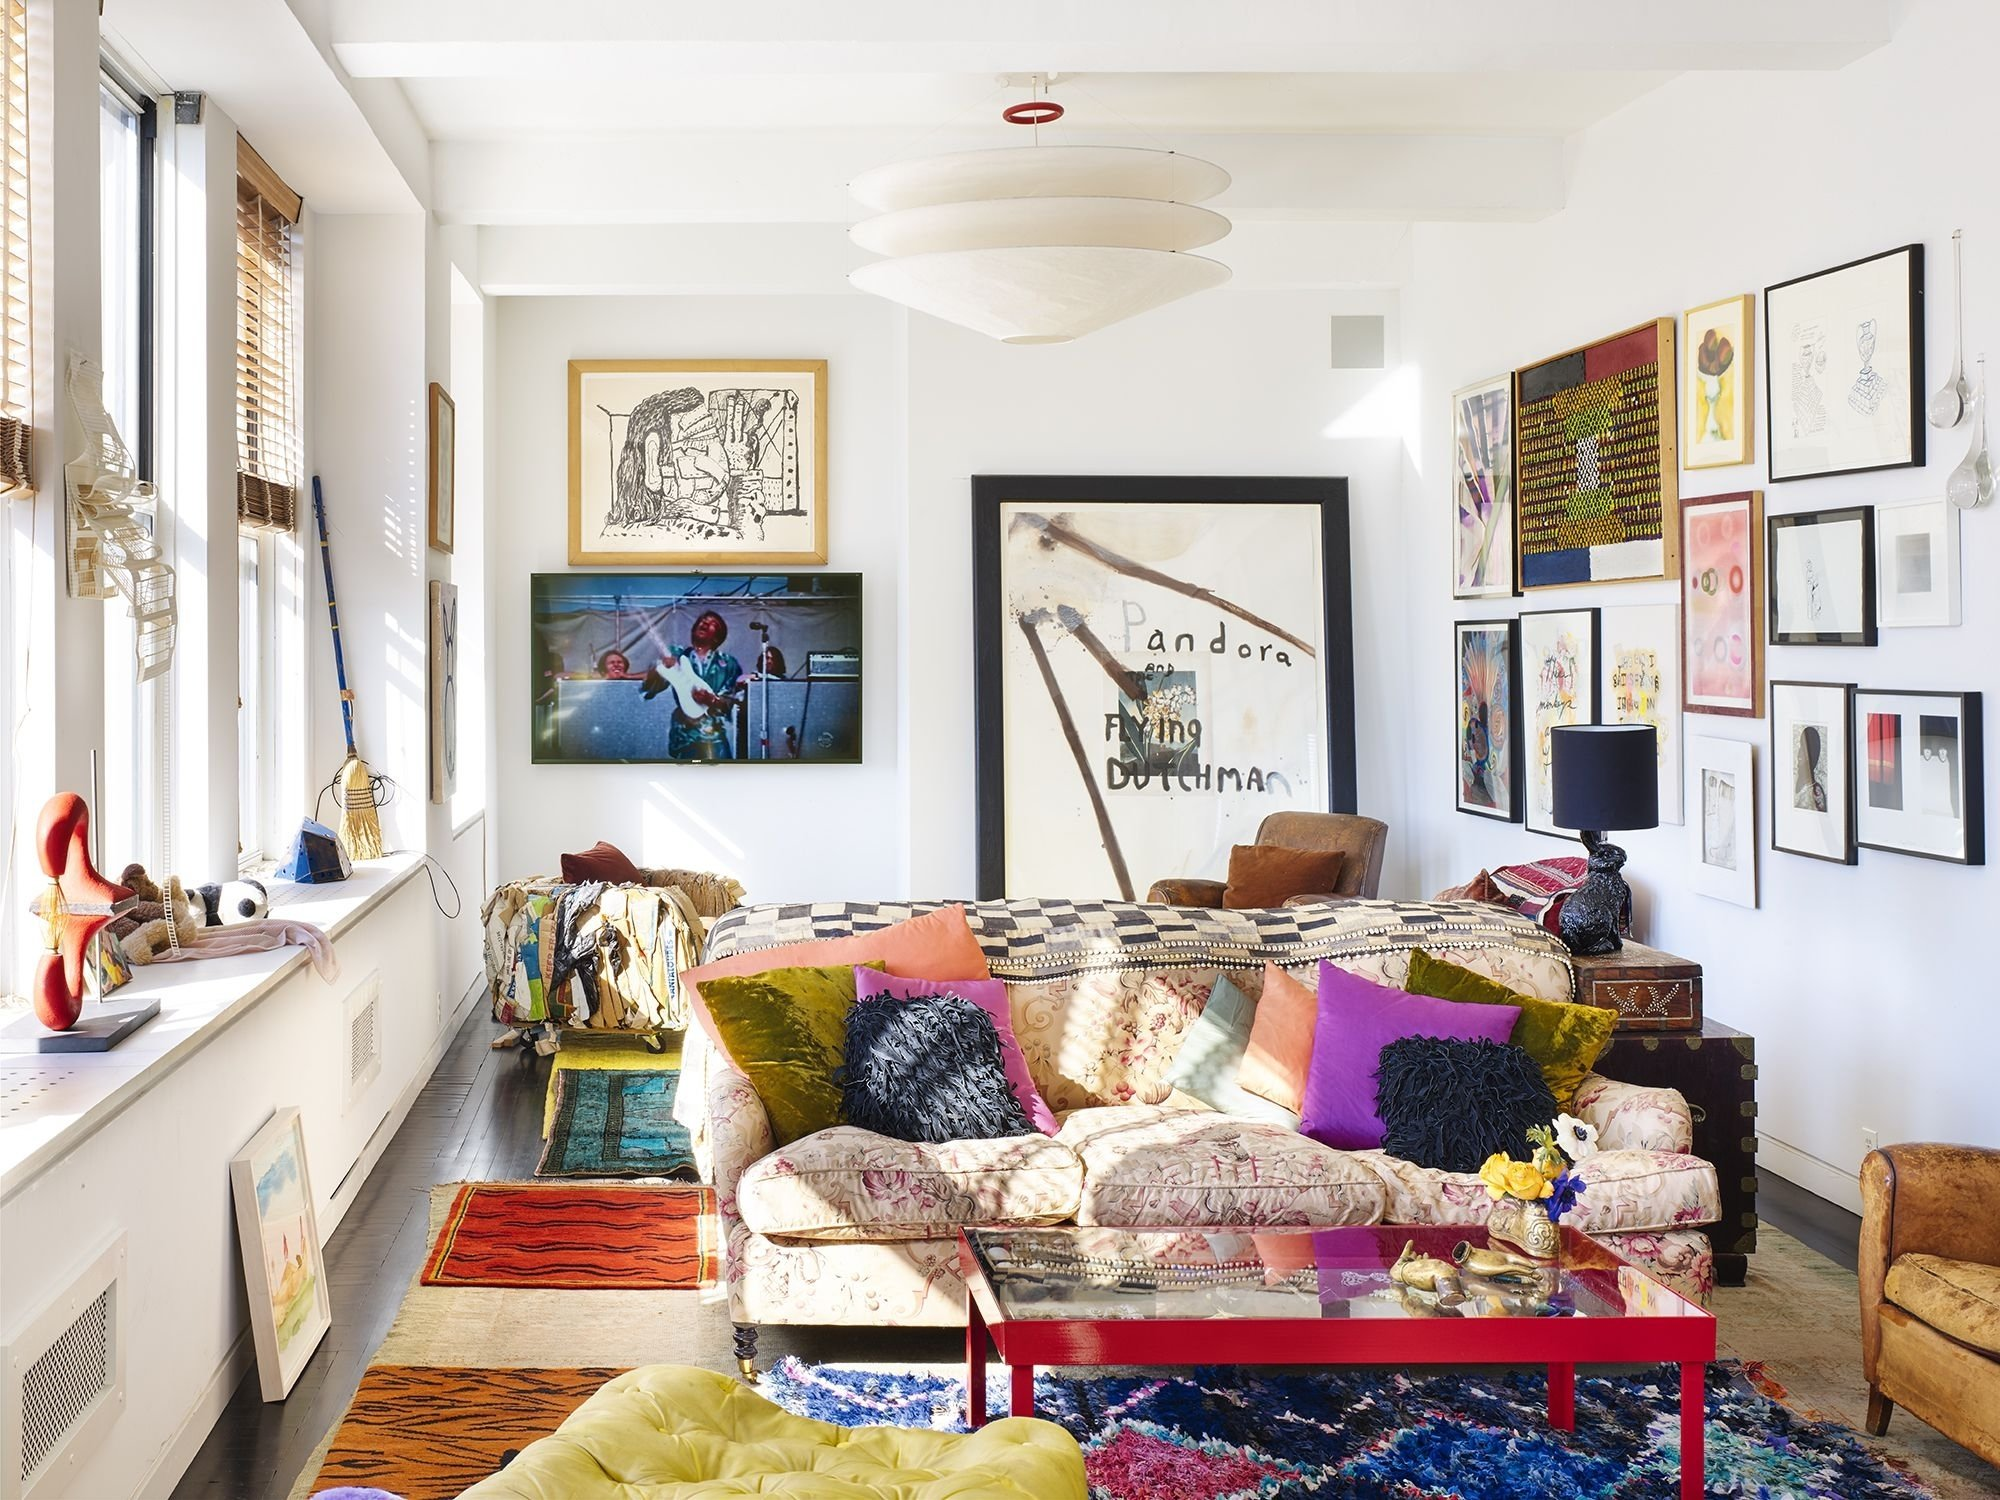 small space decorating ideas - small apartments and room design tips